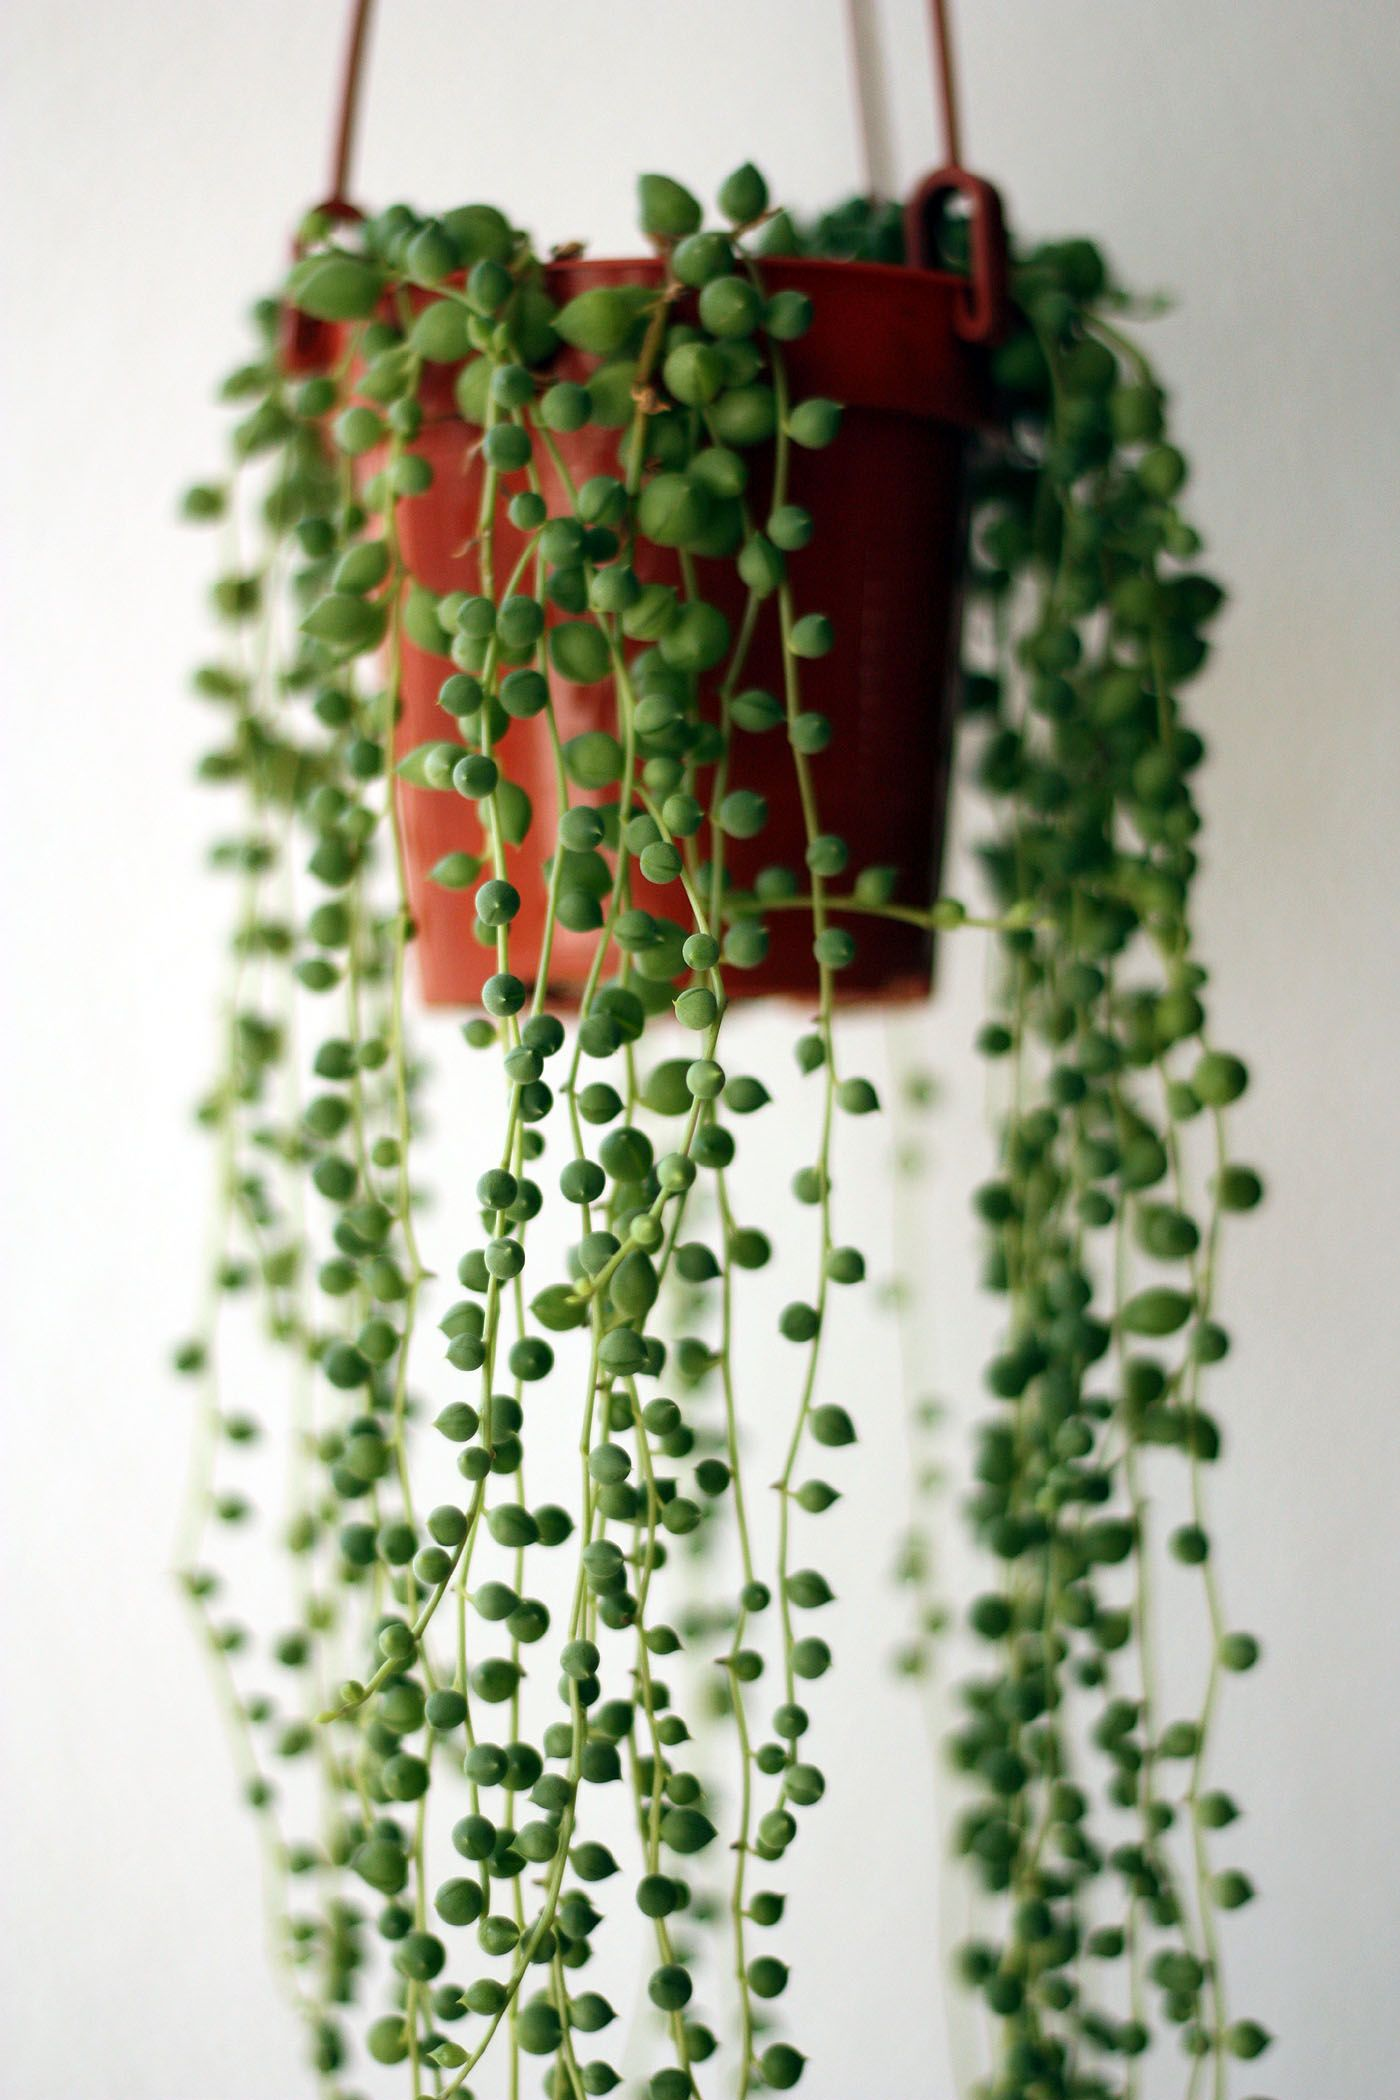 String of pearls plant care - String Of Pearls Plant Senecio Rowleyanus This Plant Is Awesome One Of